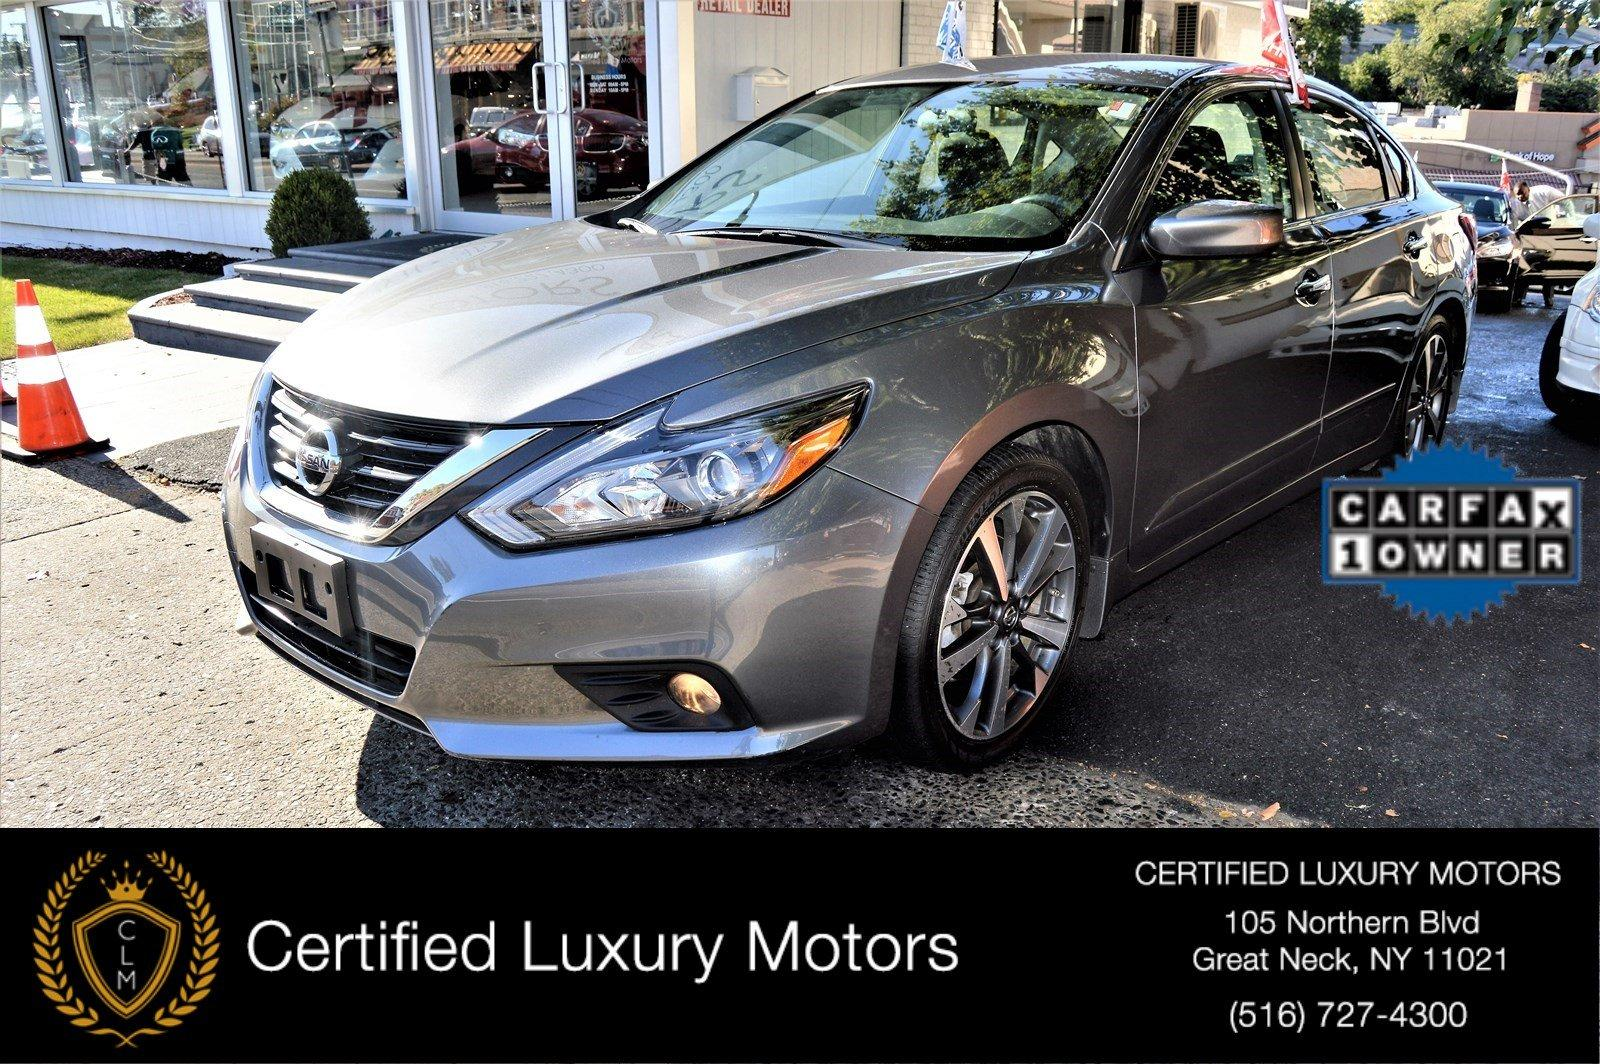 2016 nissan altima 2 5 sr stock 5521 for sale near great for Certified luxury motors great neck ny